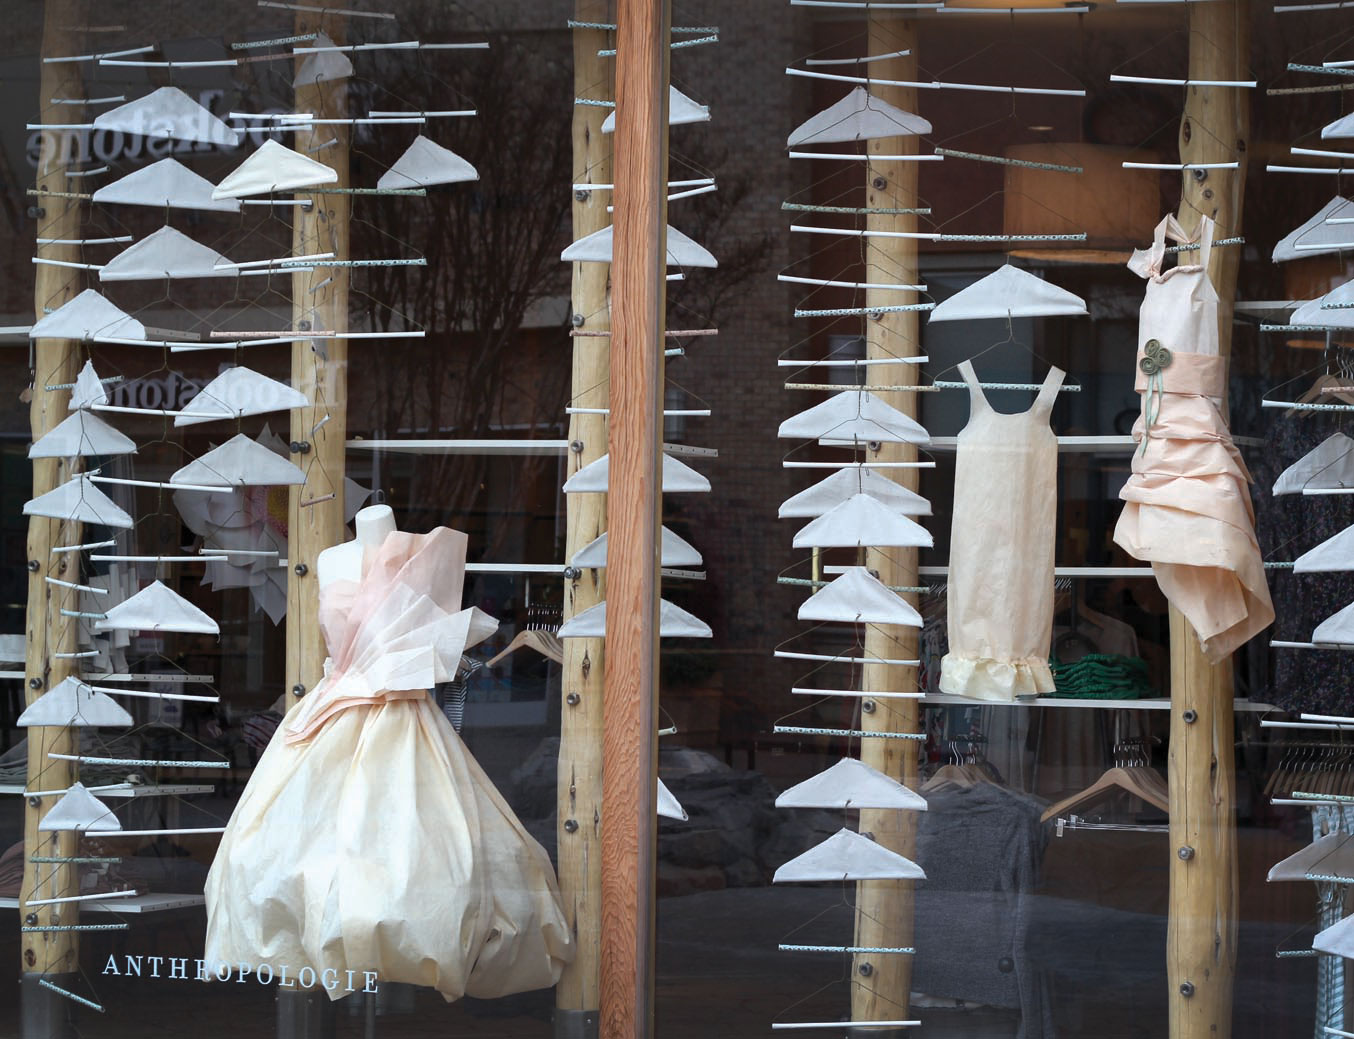 0803844b2798 Anthropologie proves secretive about newly released wedding dress collection